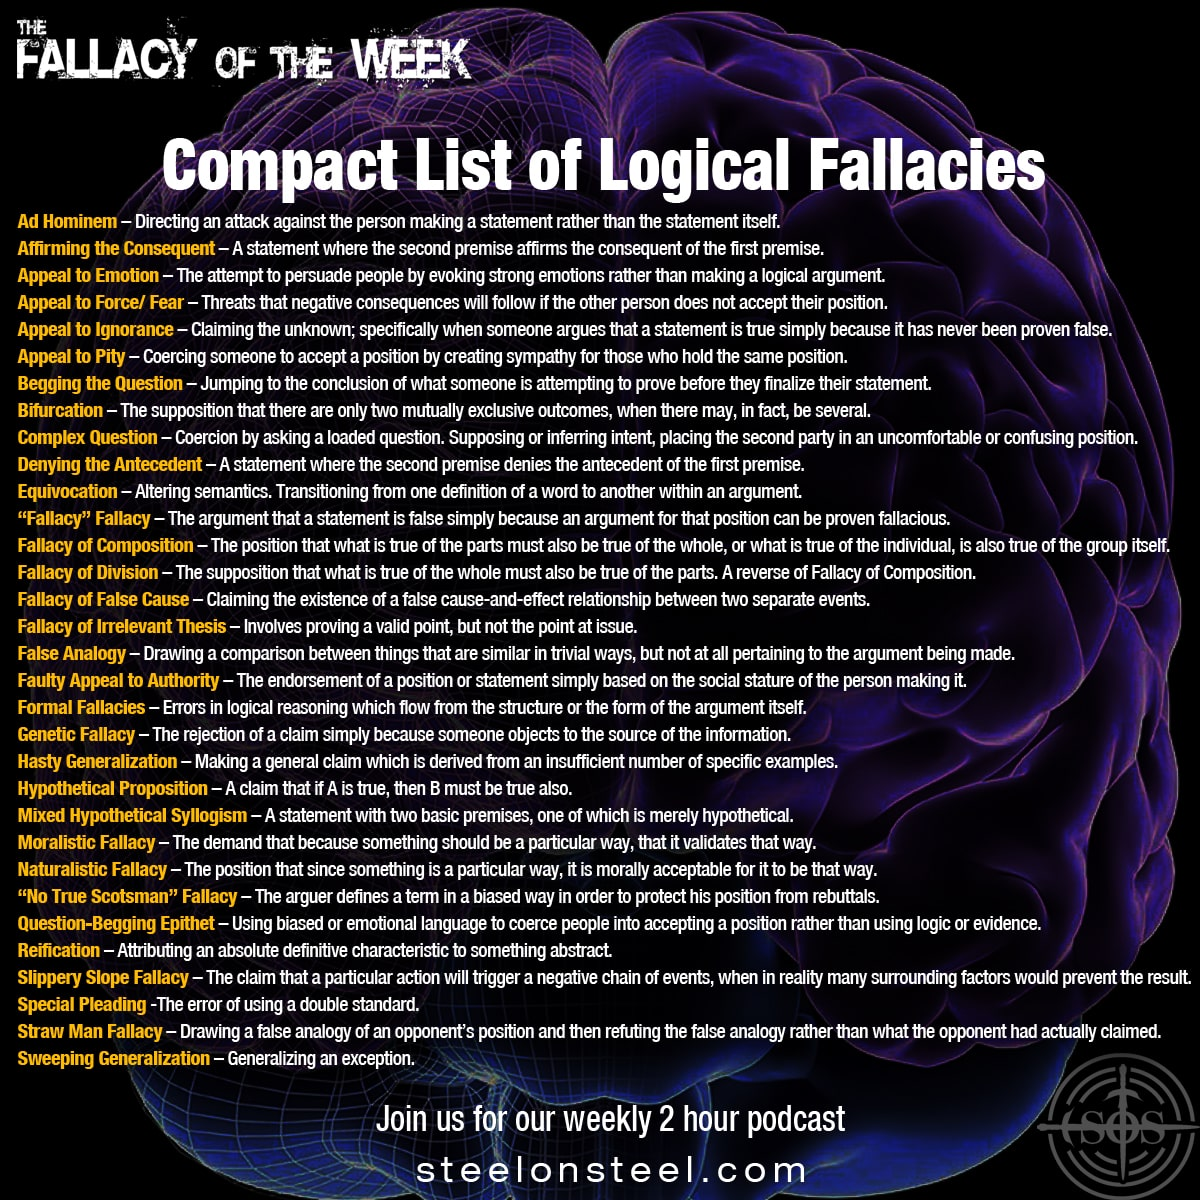 Compact list of Logical Fallacies